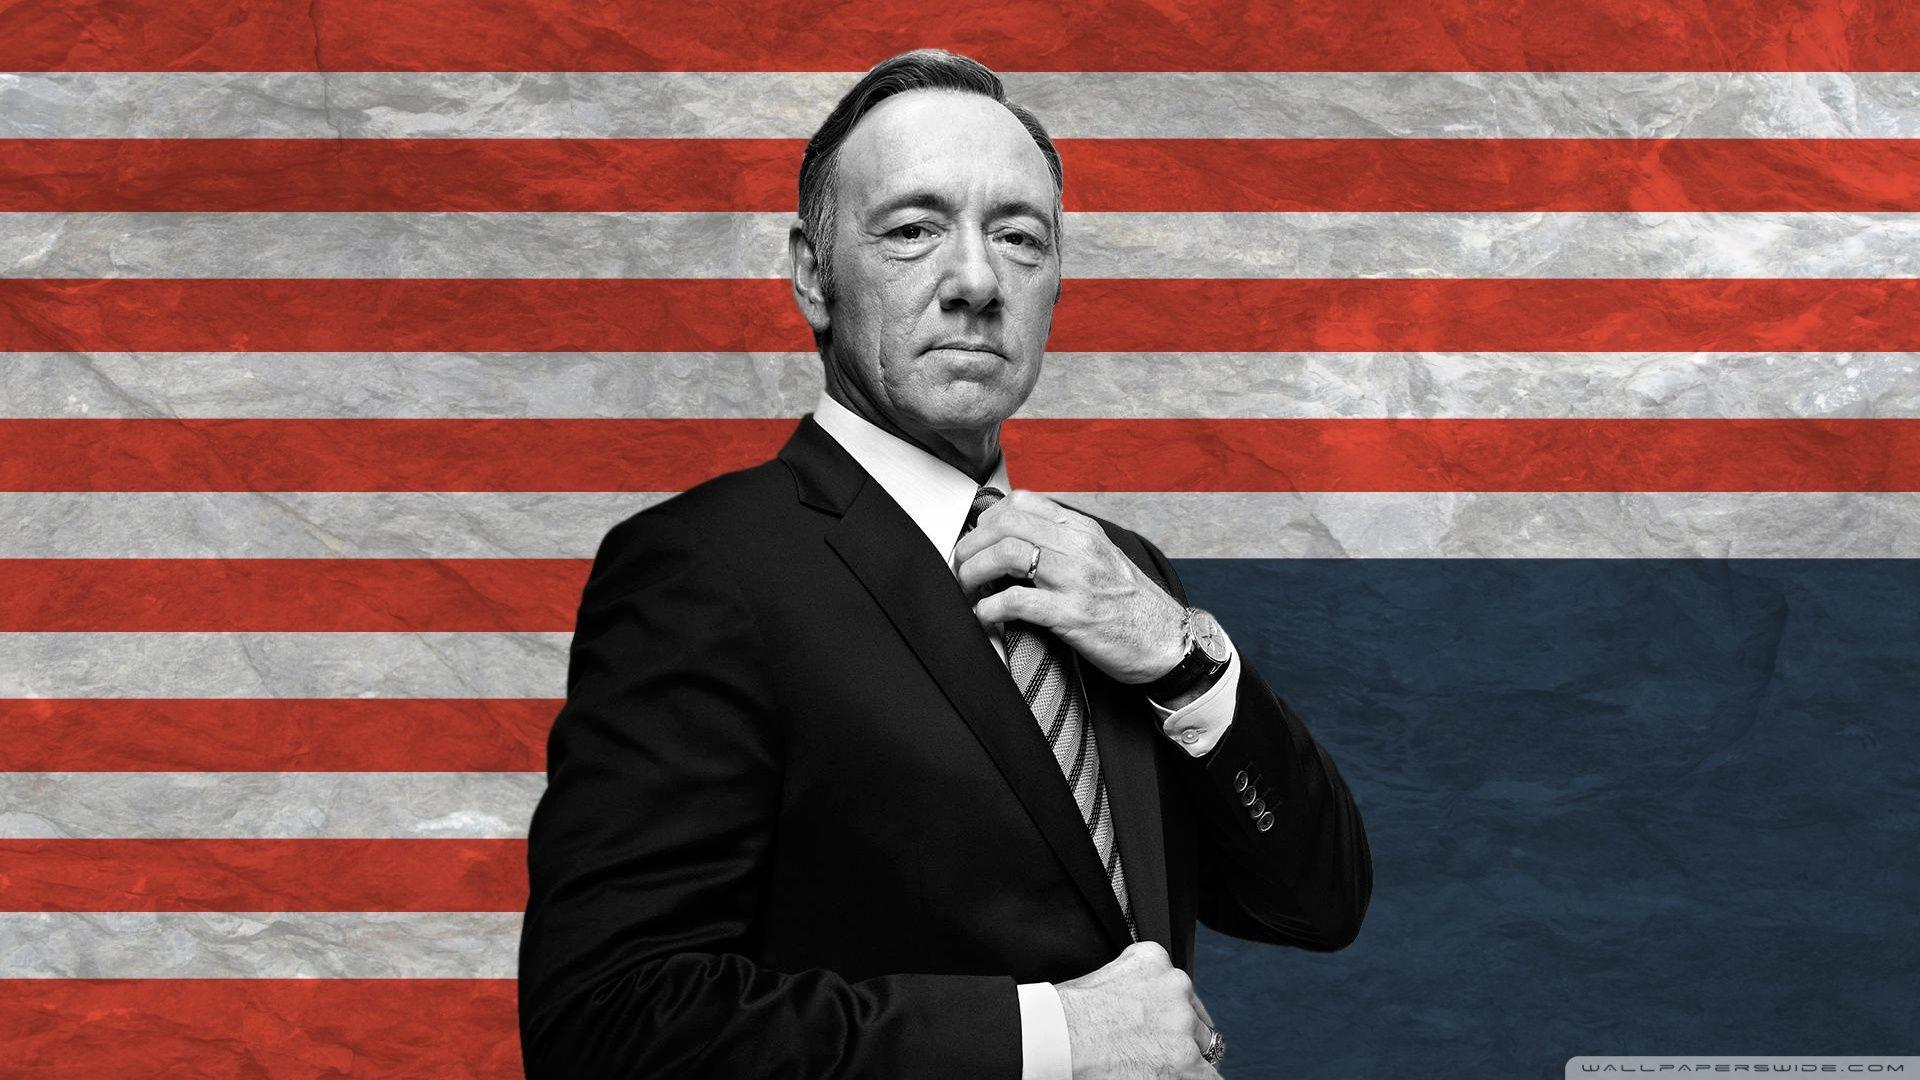 House of Cards Rogue HD desktop wallpapers : Widescreen : High